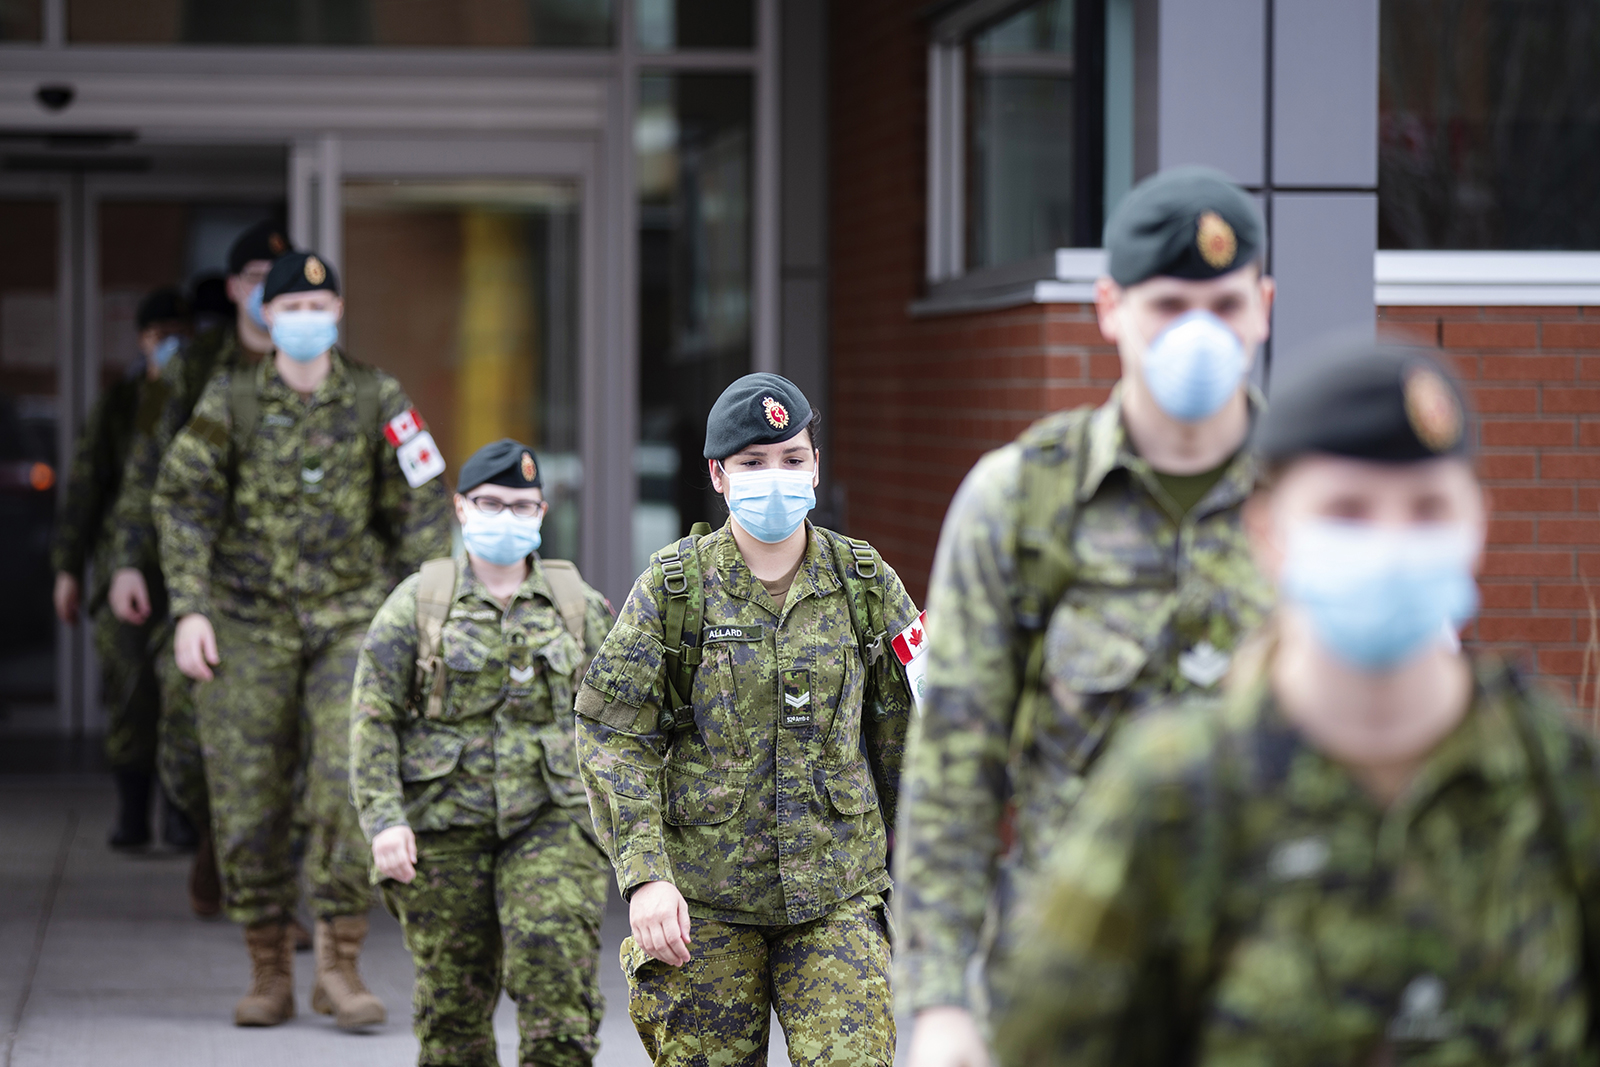 Canadian Armed Forces (CAF) medical personnel leave following their shift at the Centre Valeo St. Lambert seniors' long-term care home in St. Lambert, Quebec, Canada, on Friday, April 24.